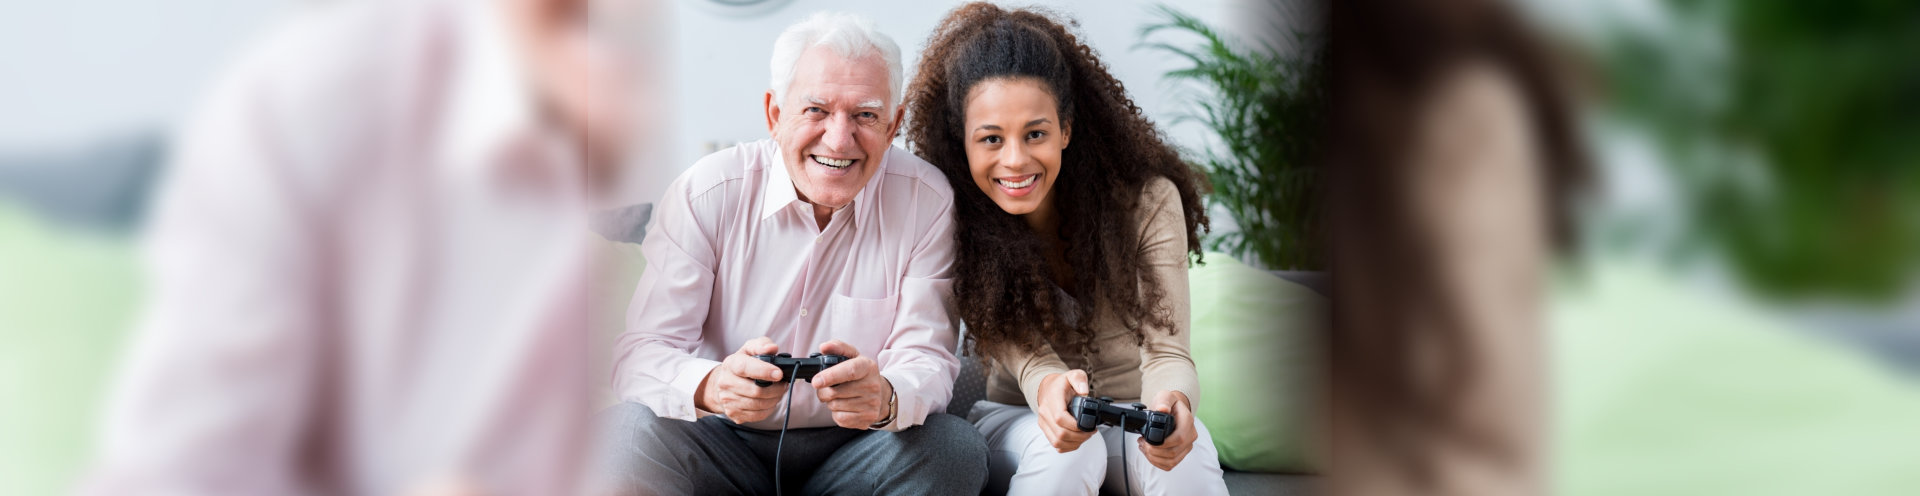 caregiver and patient playing